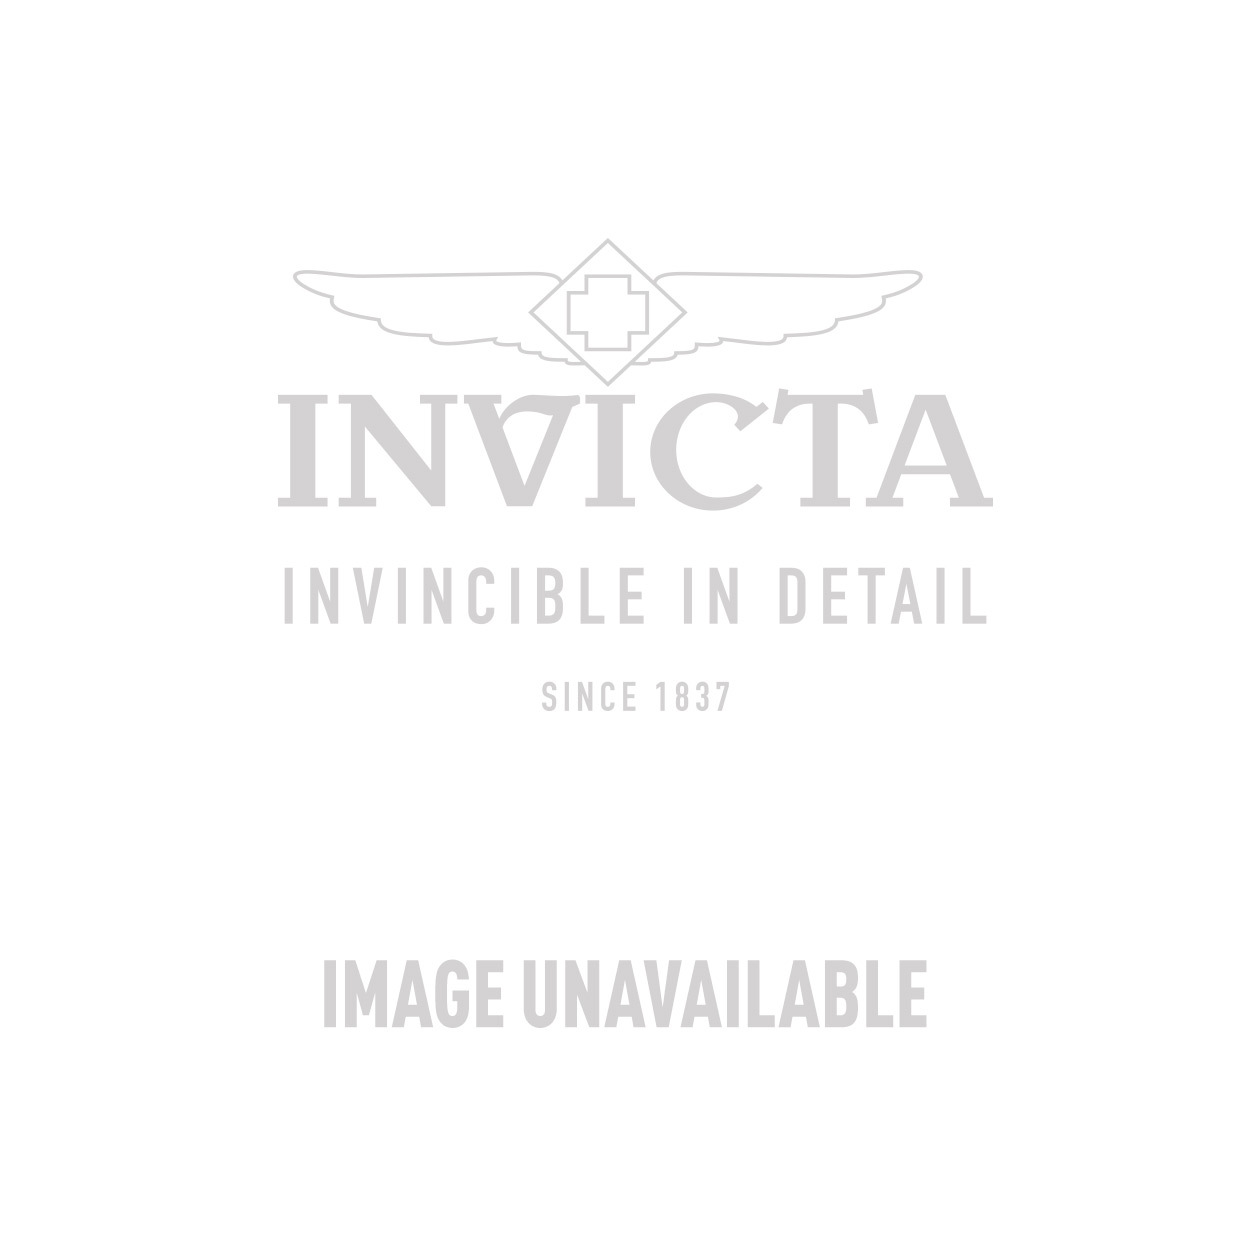 Invicta Specialty Swiss Movement Quartz Watch - Gold case with Black tone Leather band - Model 12172